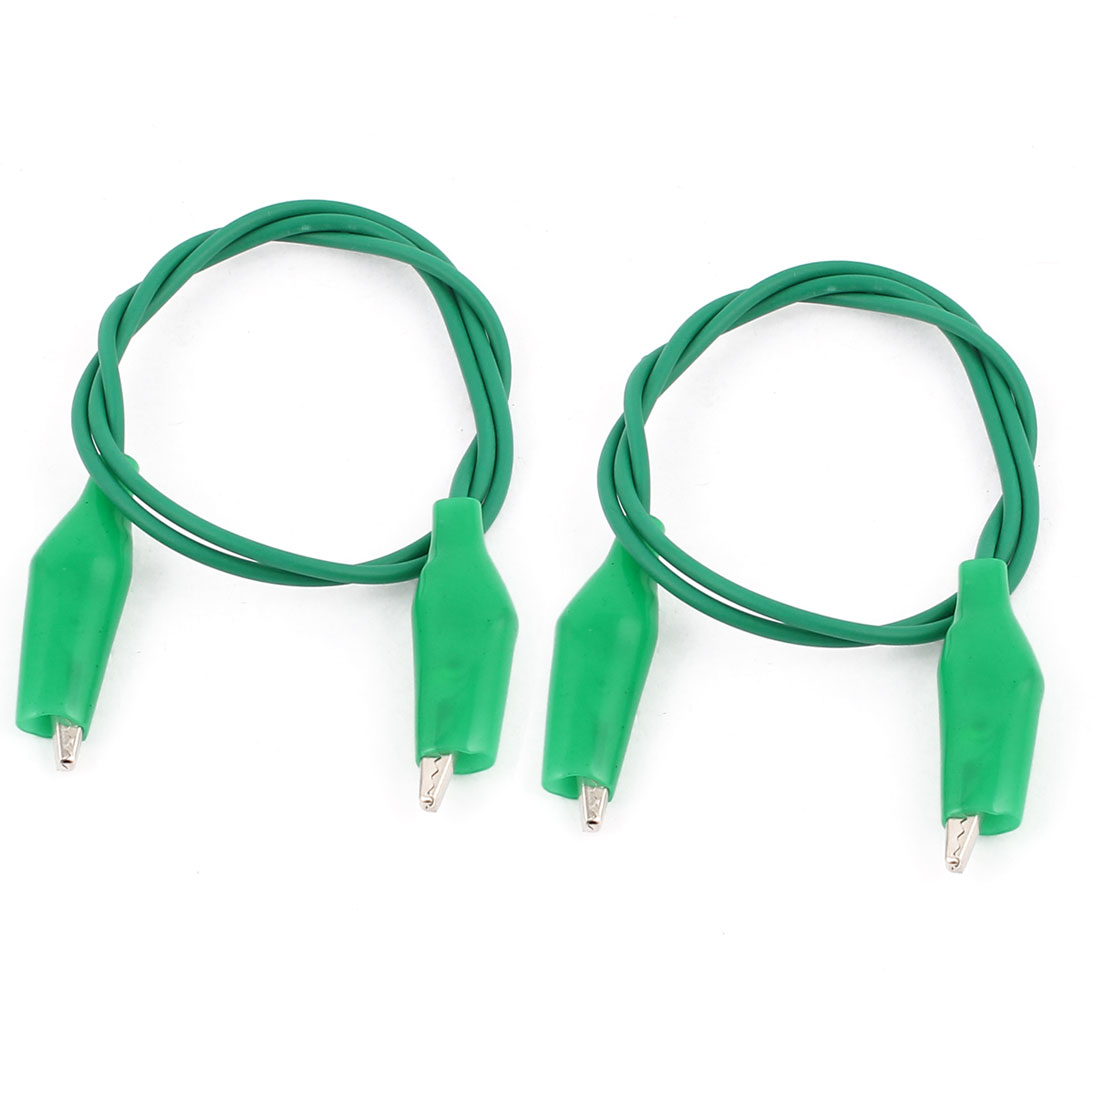 2pcs Green Insulated Boot Dual Ended Test Leads Alligator Clip Jumper Wire Cable 47cm